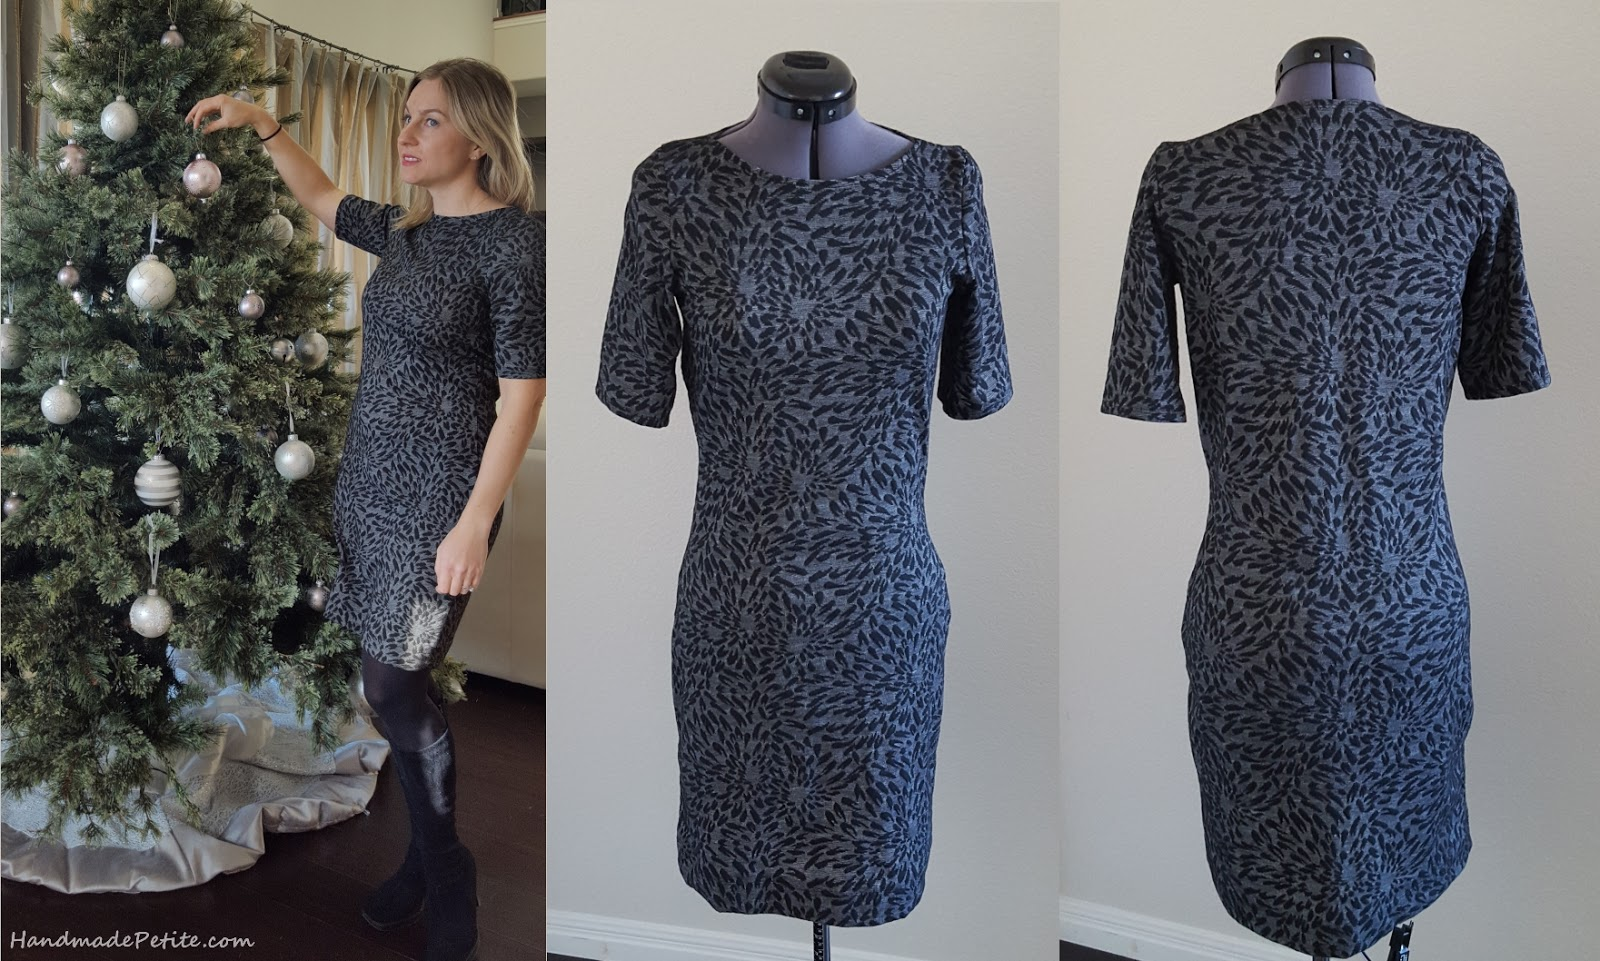 Quick sewing project black and gray knit jacquard dress from tshirt pattern. Side, front and back views